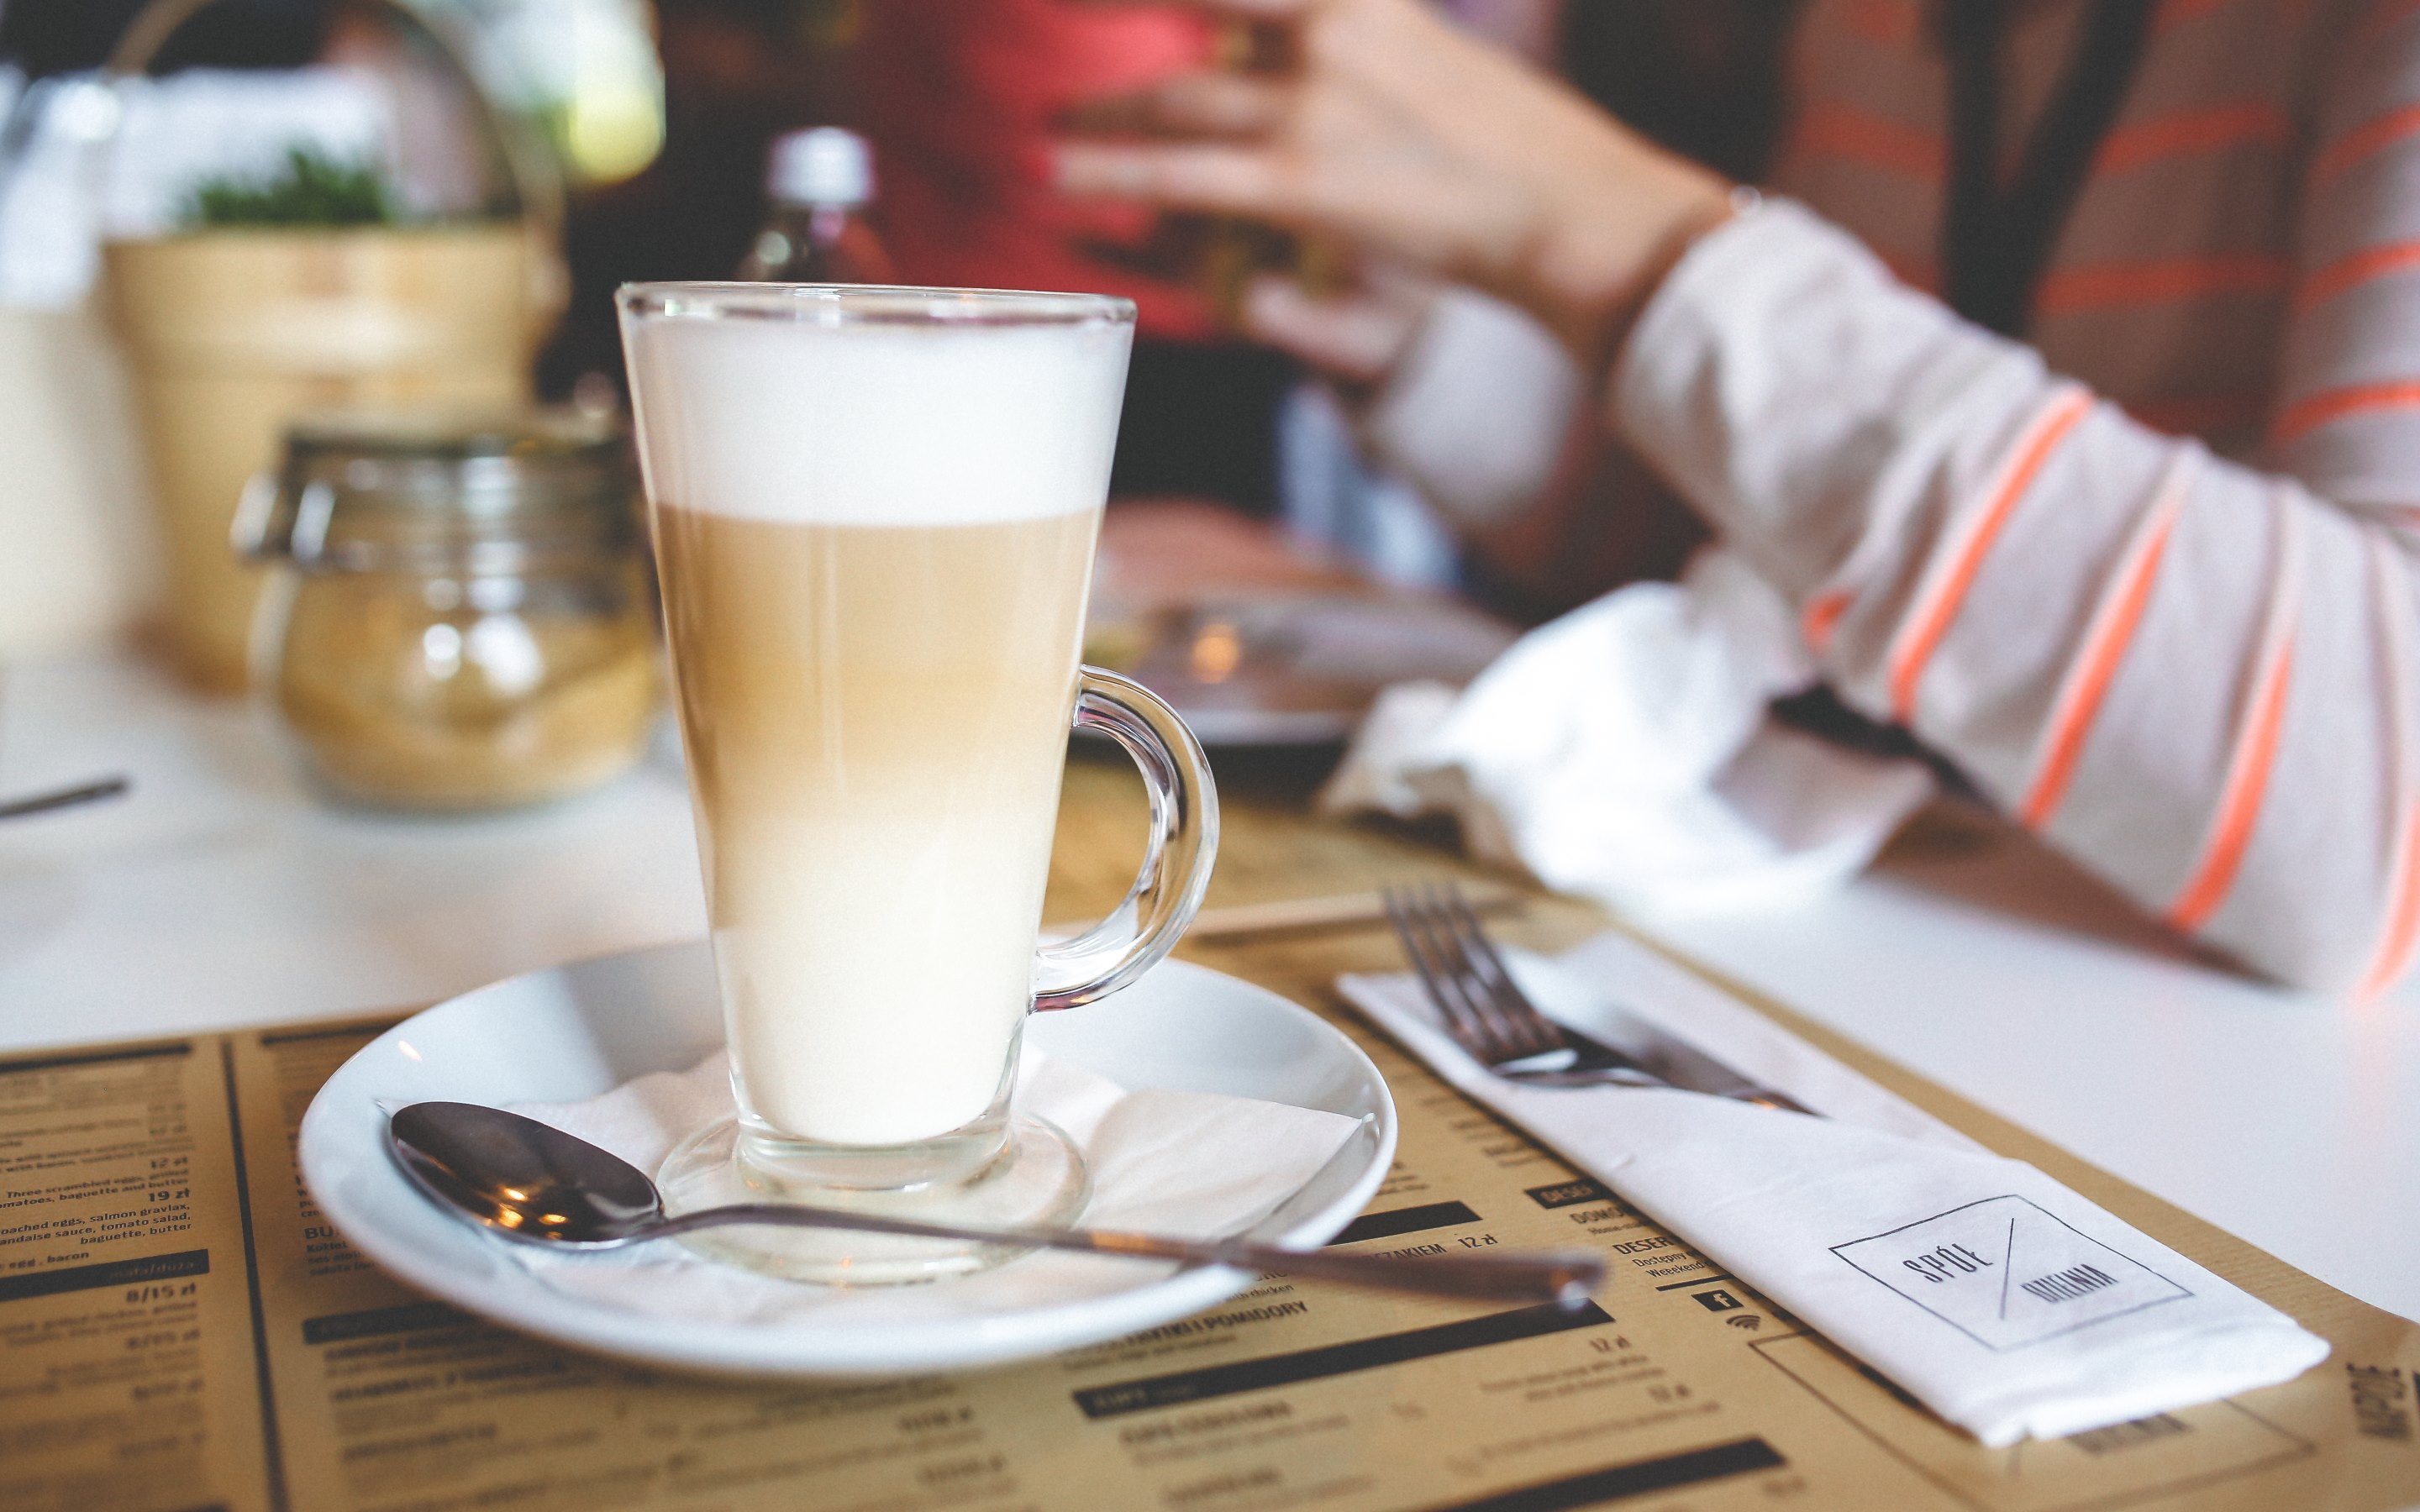 Free photo: Cappuccino, Latte, Coffee, Cup - Free Image on Pixabay ...